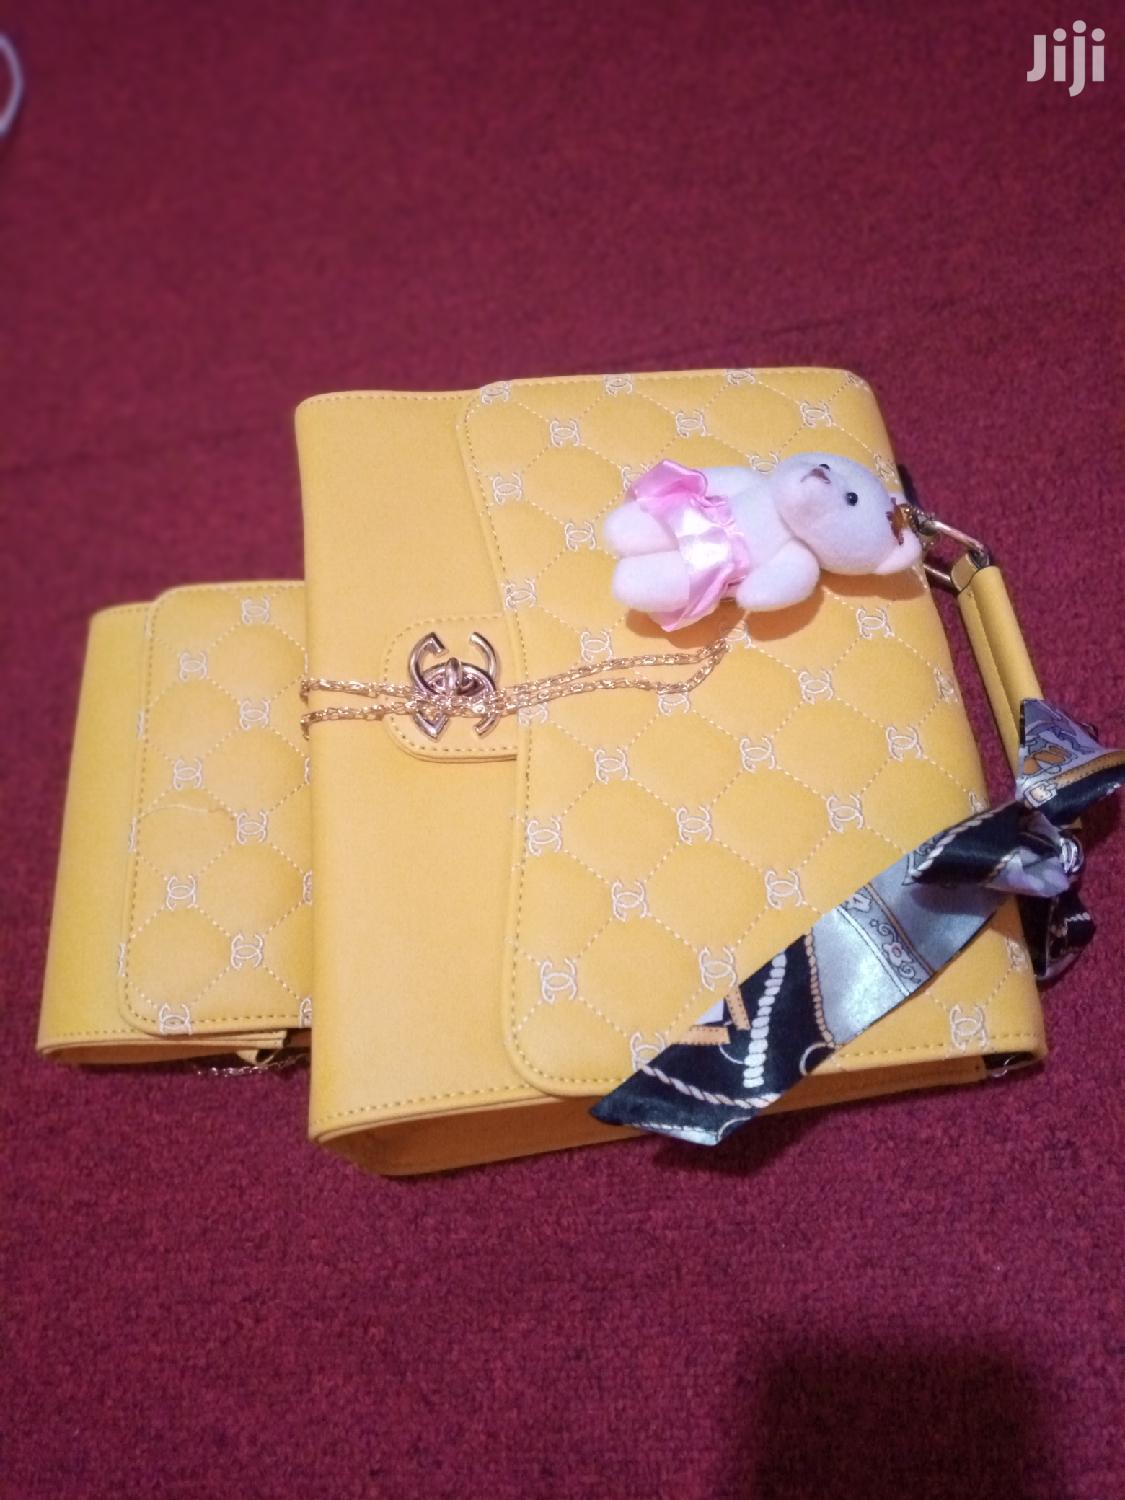 Ladies Hand Bags In Different Colors | Bags for sale in Accra Metropolitan, Greater Accra, Ghana